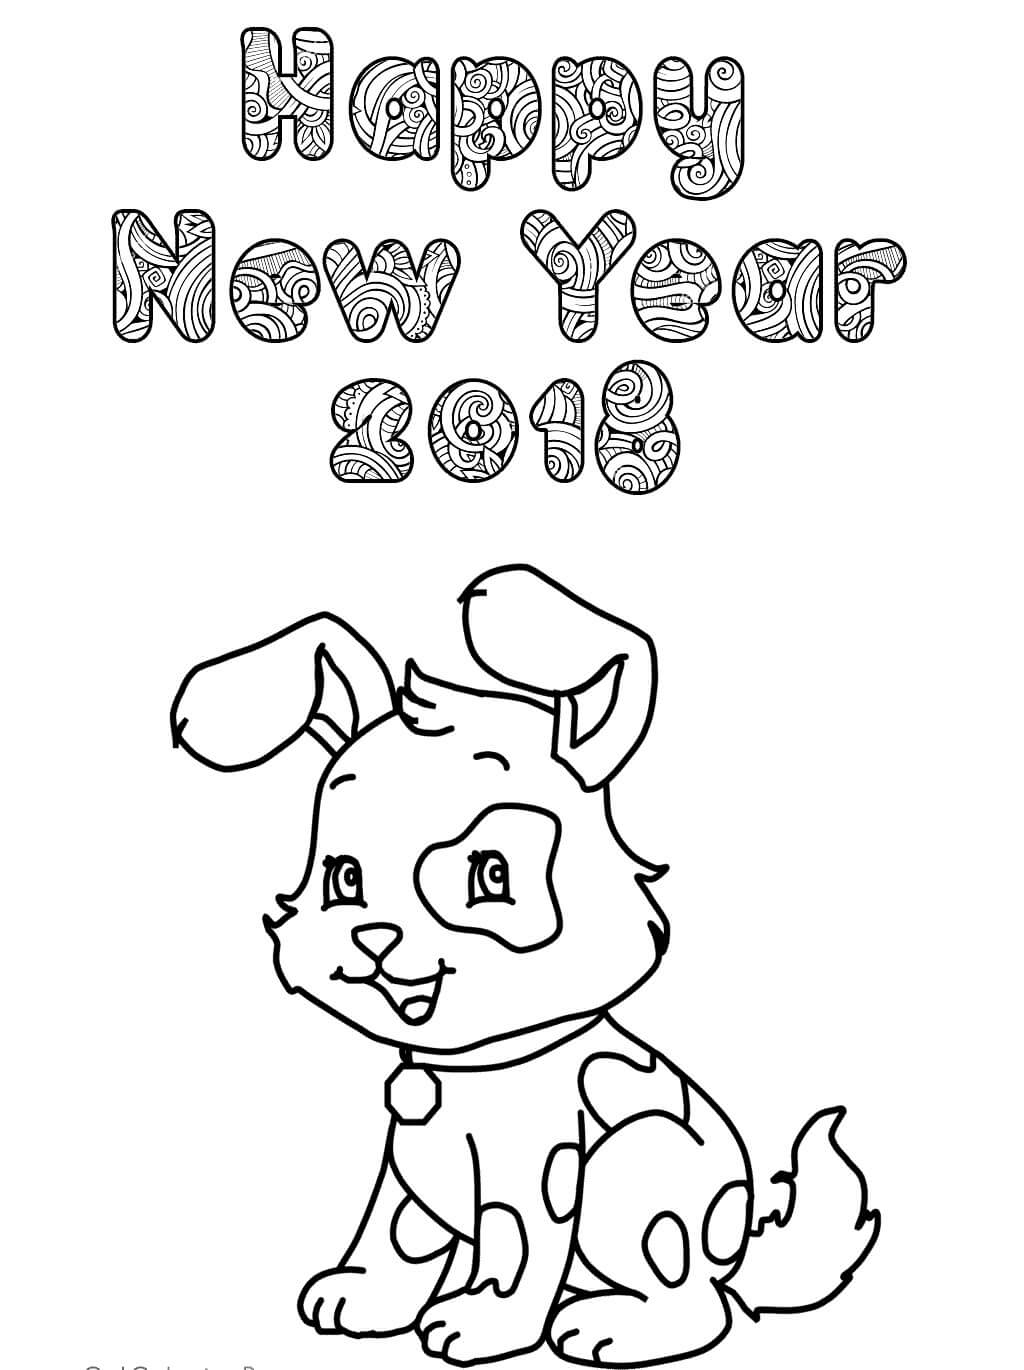 Chinese New Year 2018 Coloring Page